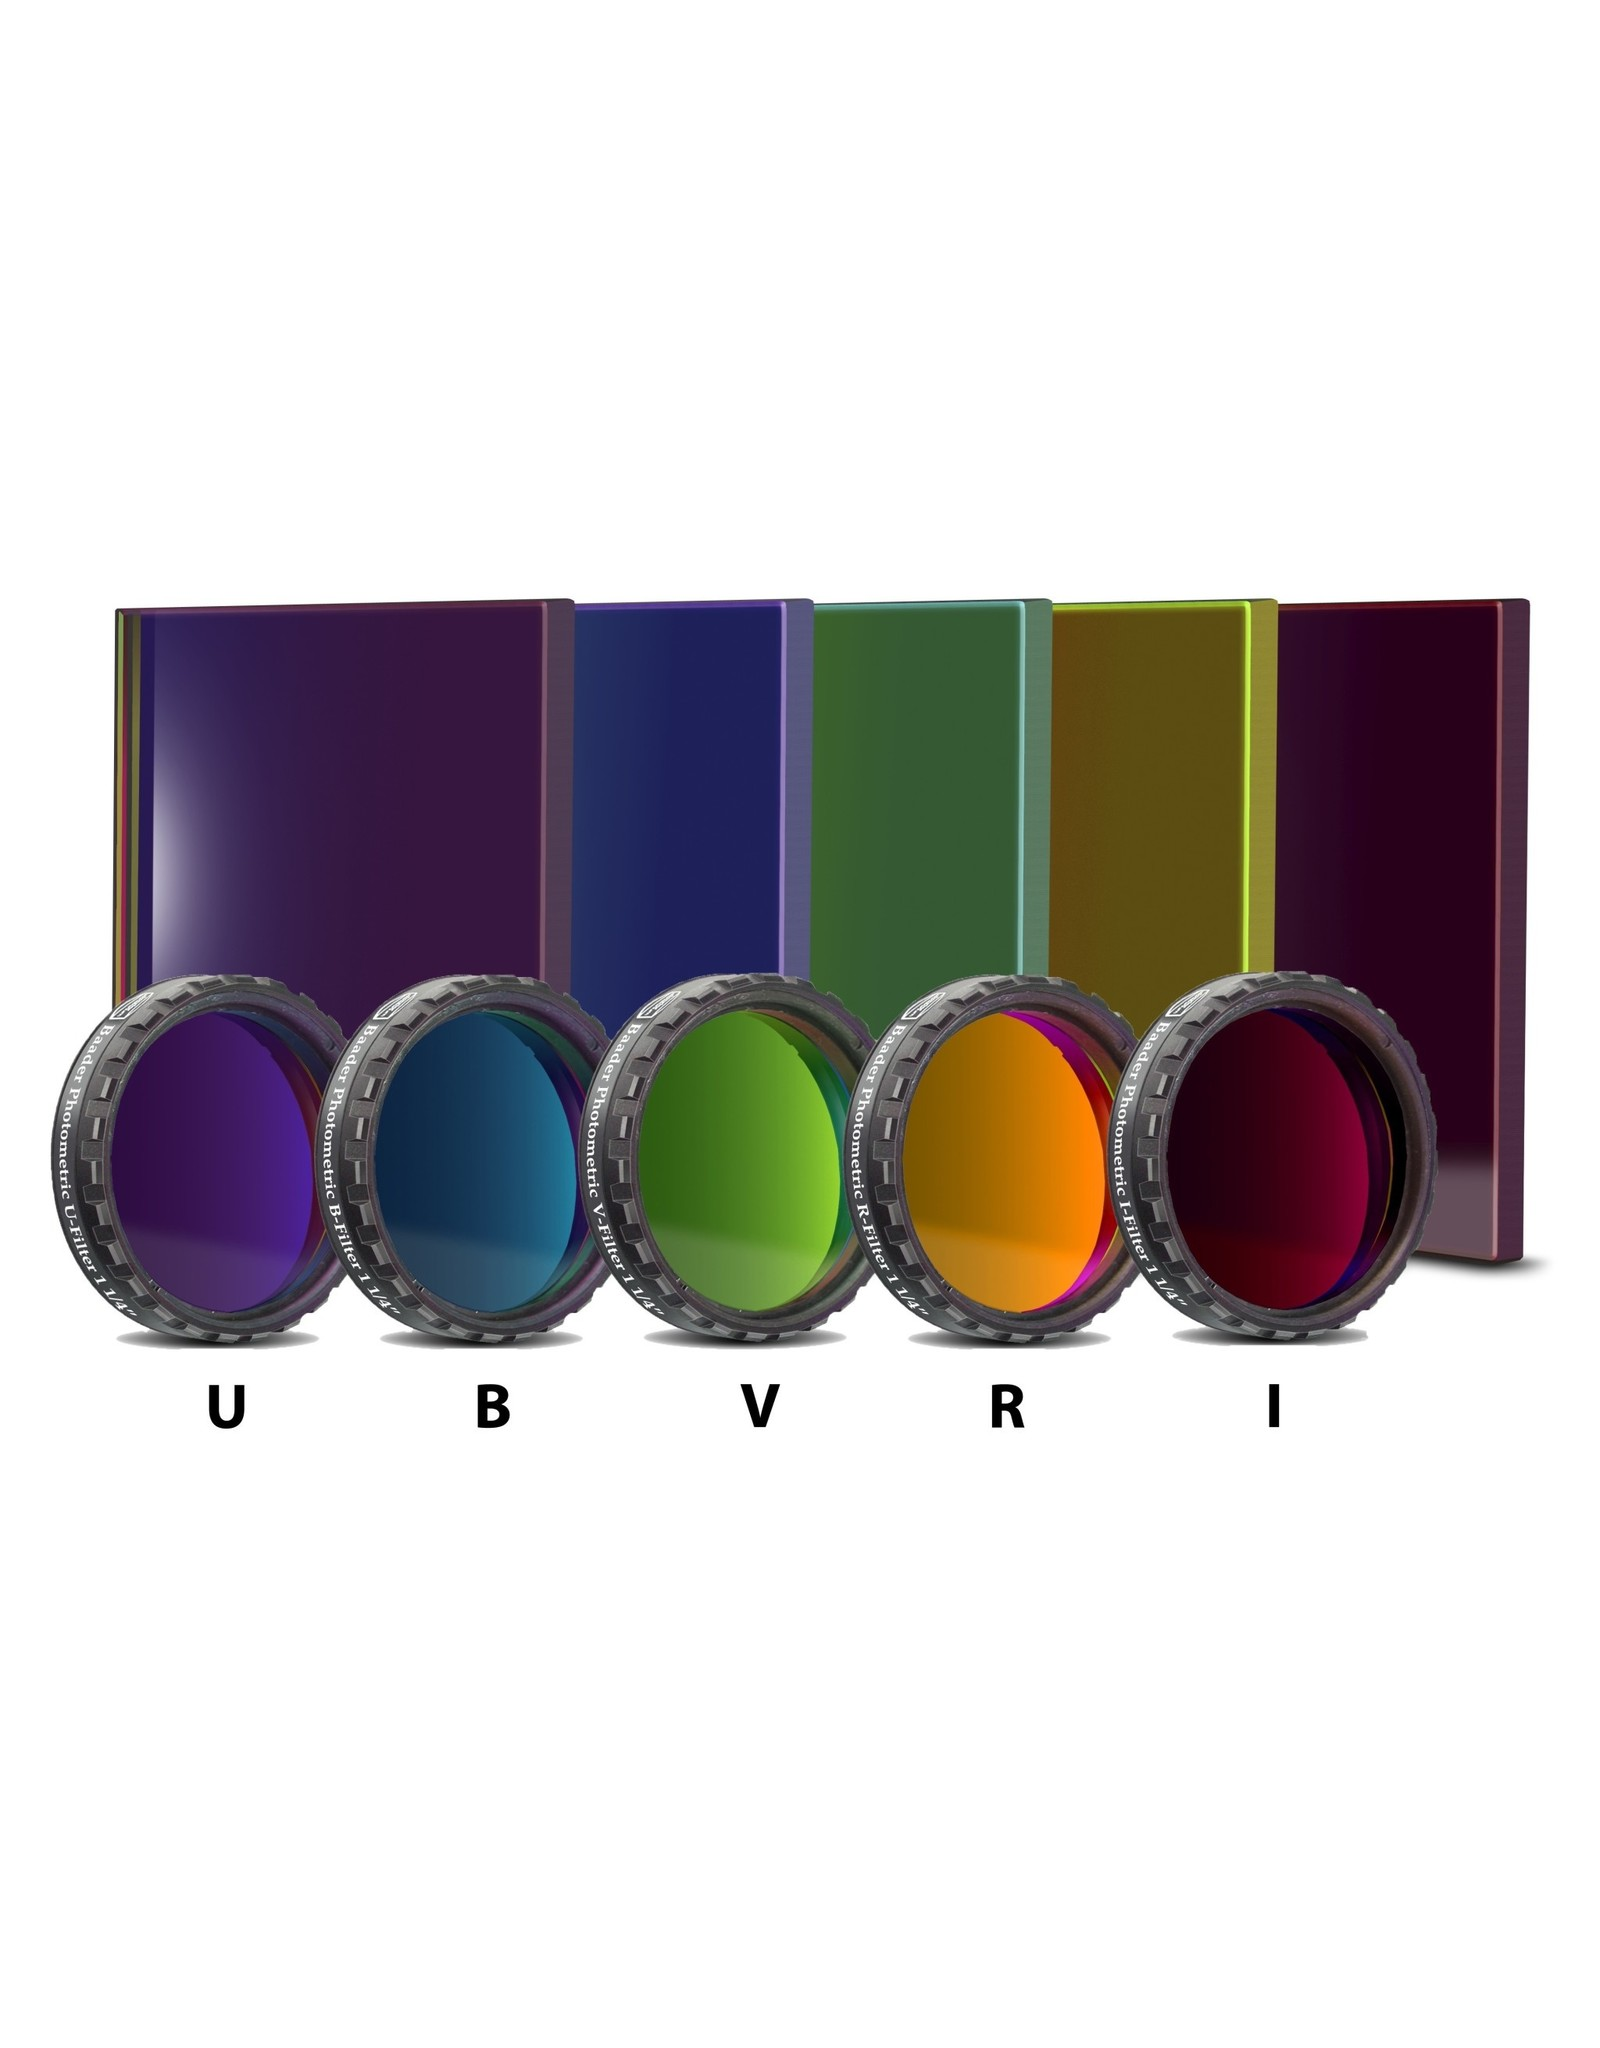 Baader Planetarium Baader UBVRI Photometric Johnson/Bessel Filter (Specify Size and Type)